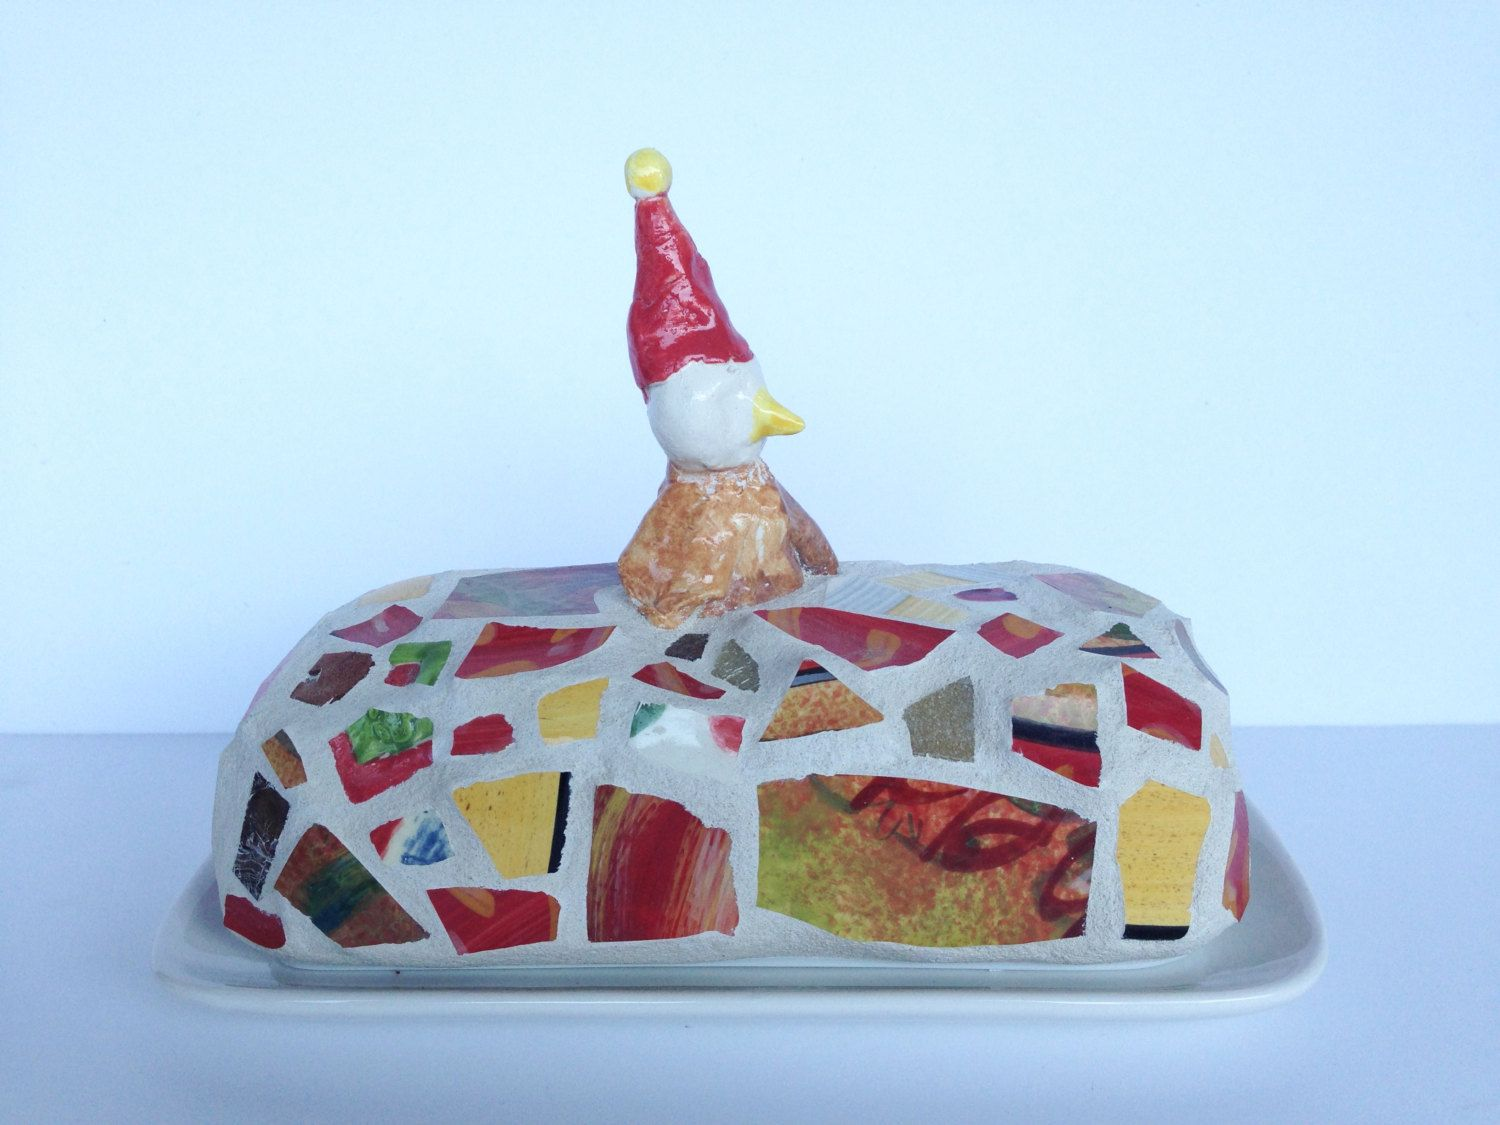 nice hat! butter dish by butterbiskit on Etsy